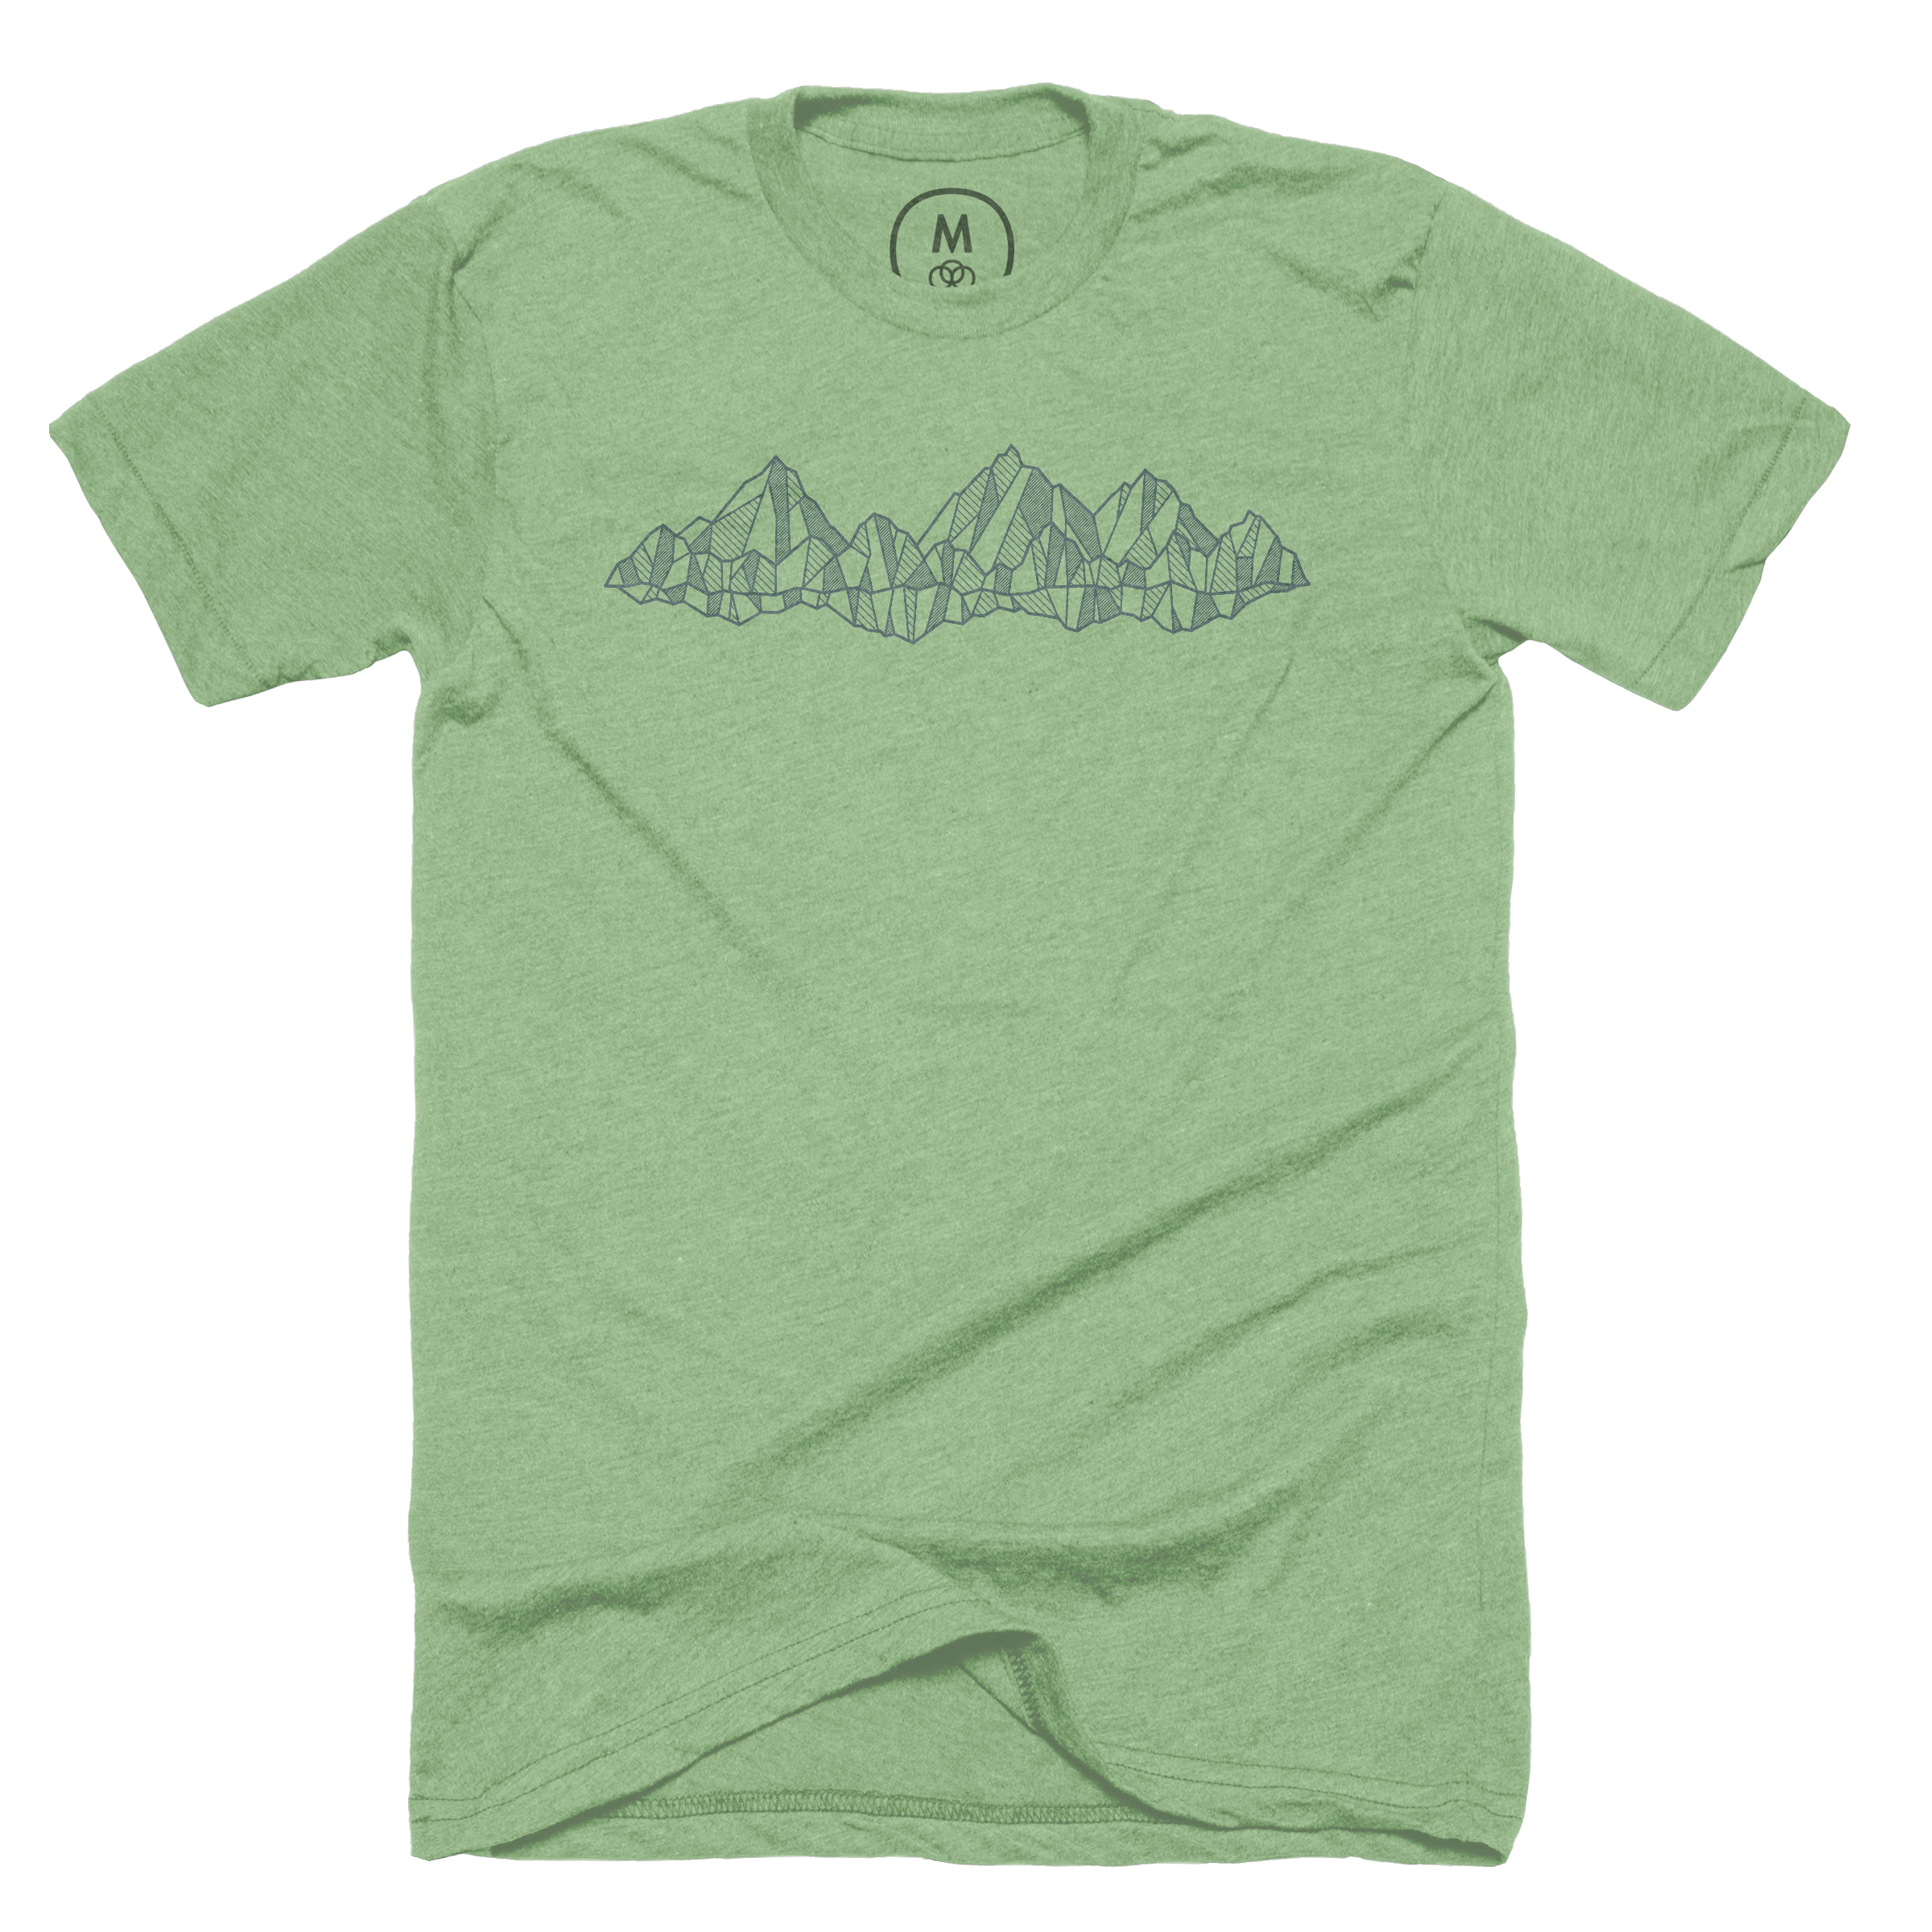 My Mountain Shirt